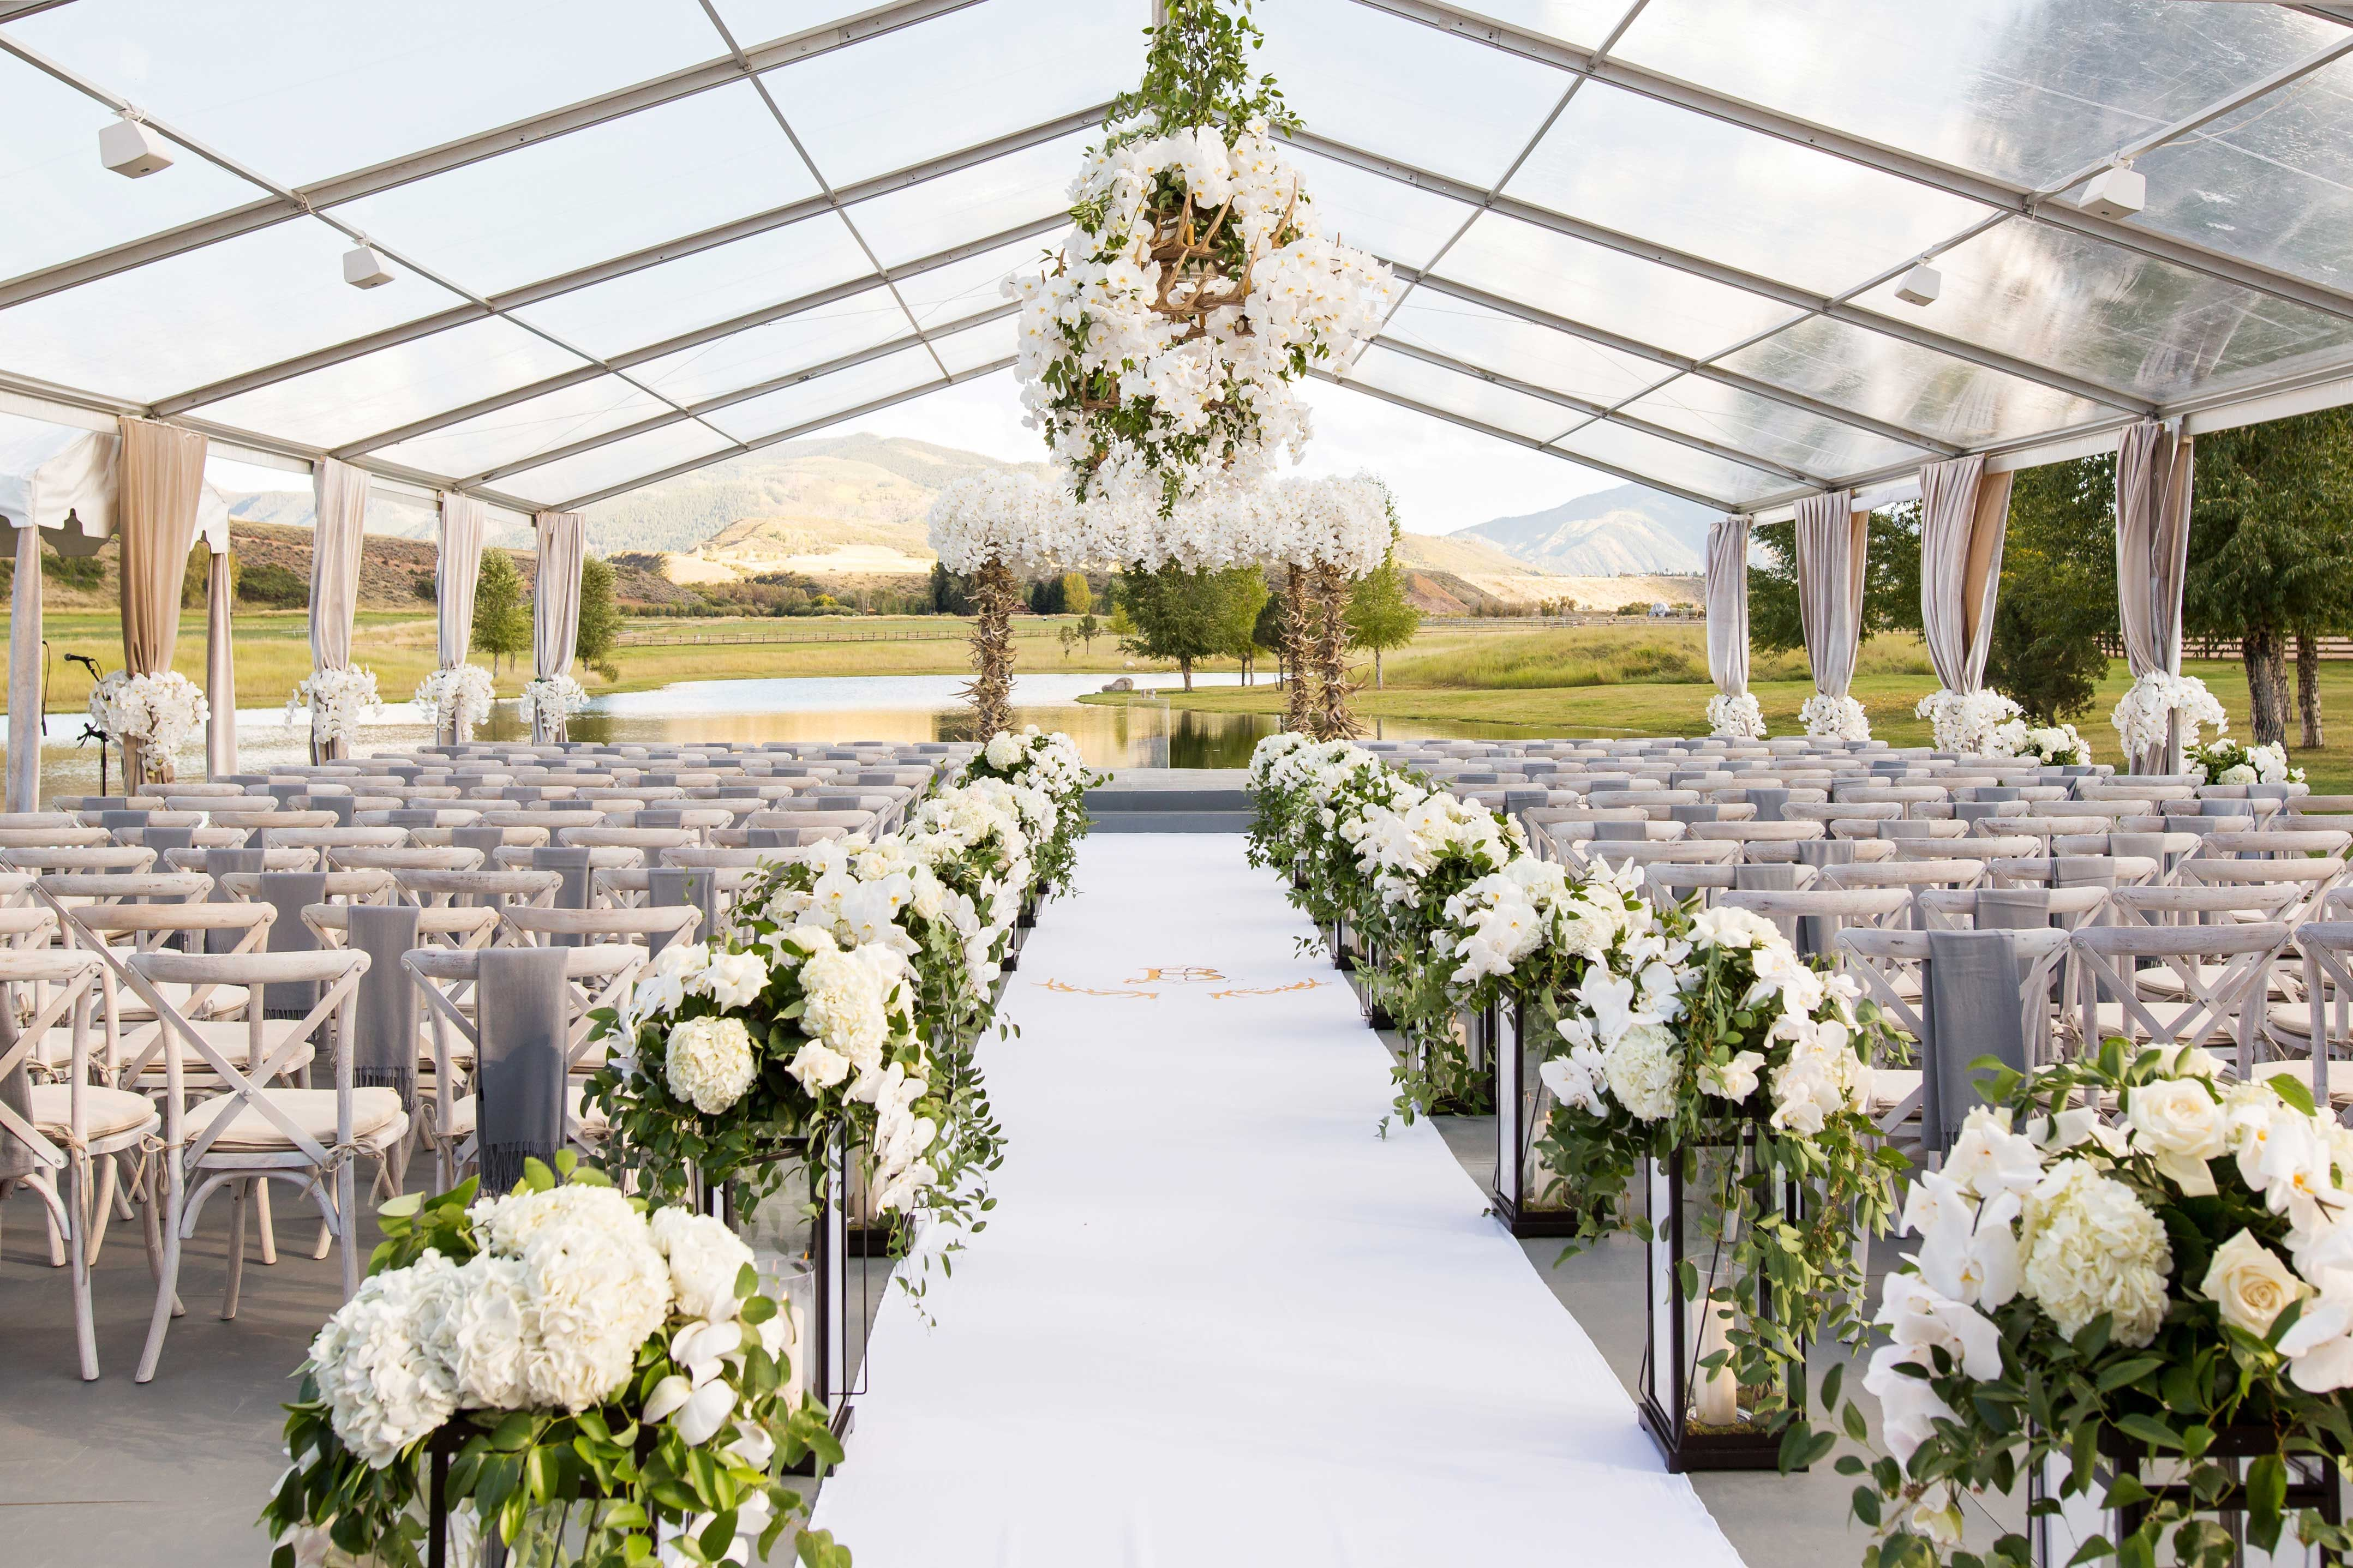 How to Have a Beautiful, WeatherSafe Outdoor Wedding